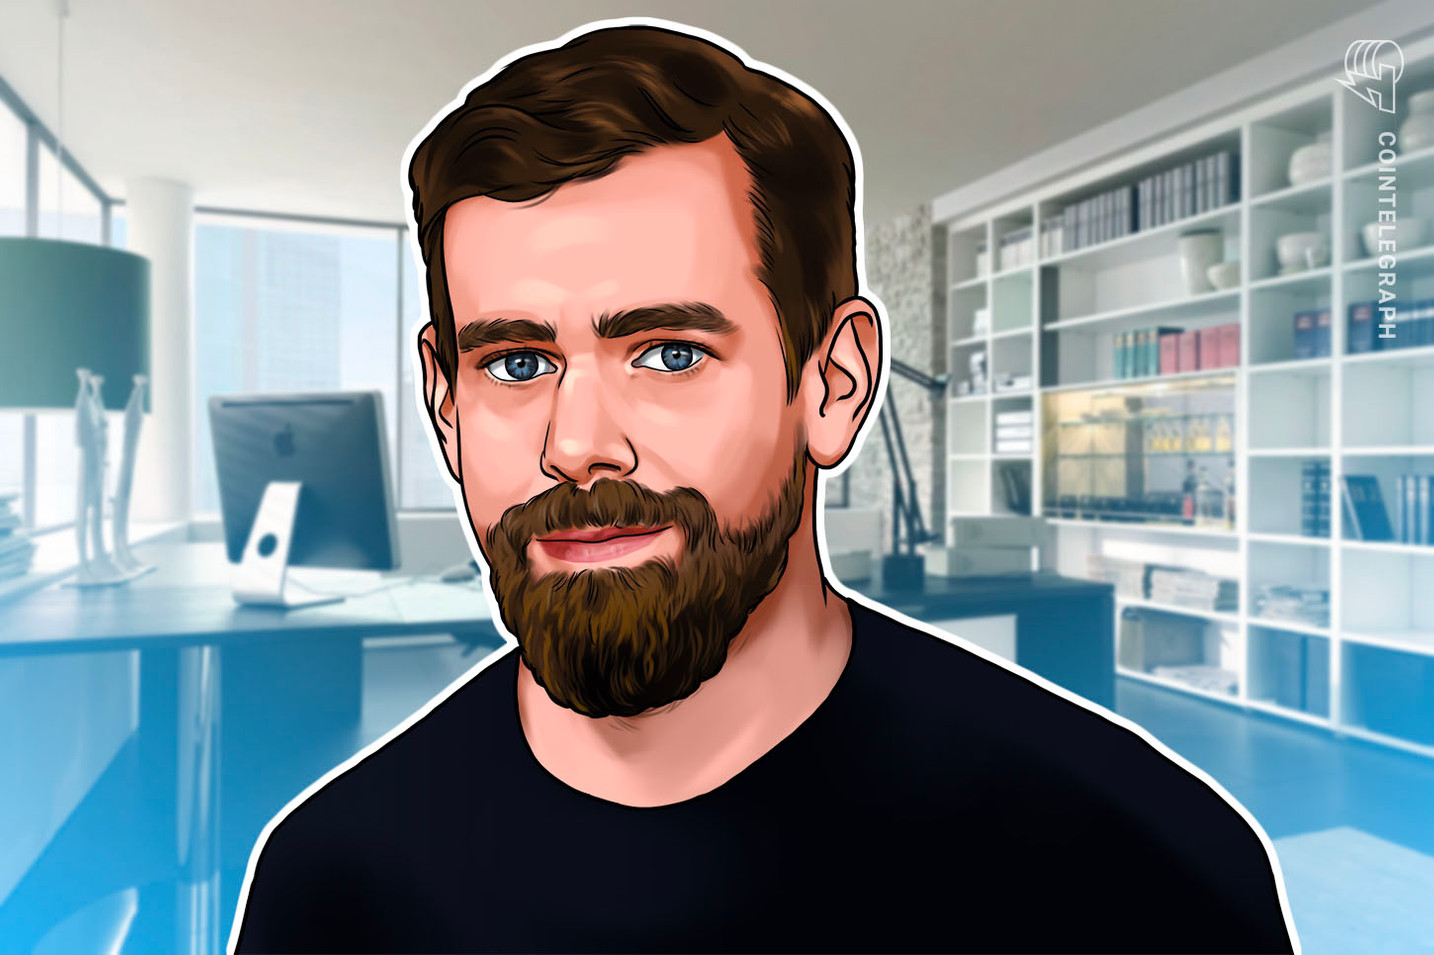 Jack Dorsey warns that FinCEN regulations will drive crypto users offshore